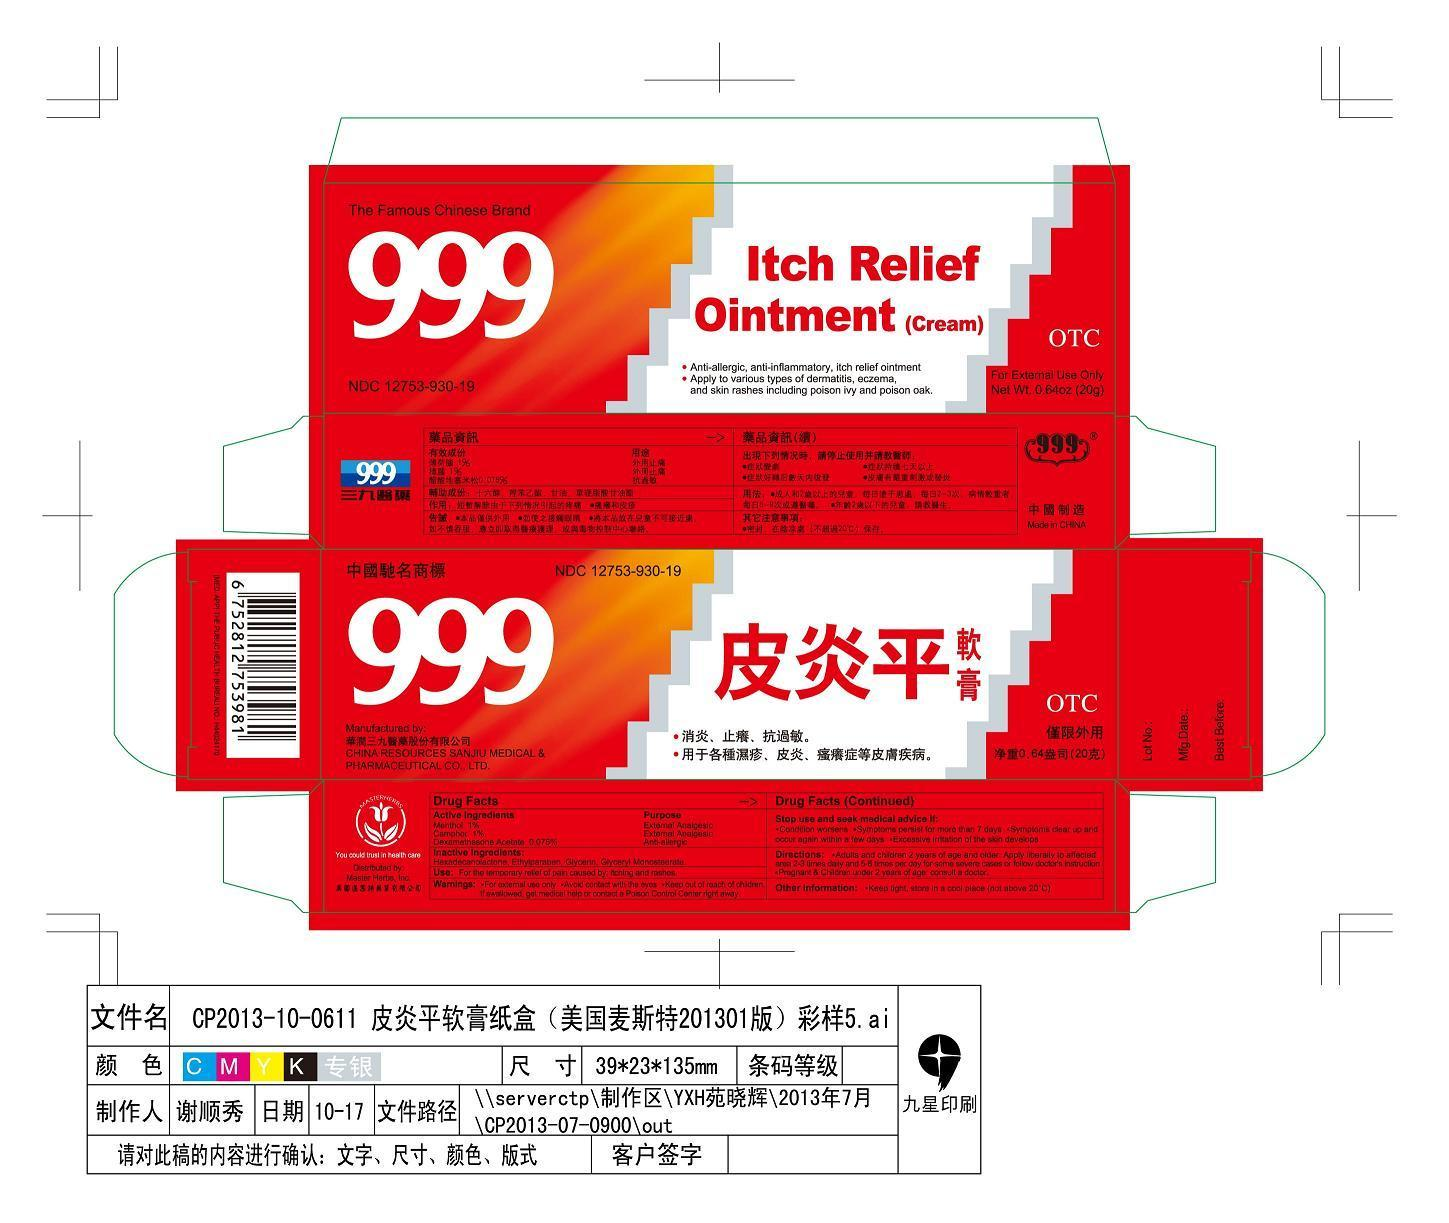 999 Itch Relief (Menthol) Ointment [China Resources Sanjiu Medical & Pharmaceutical Co Ltd]